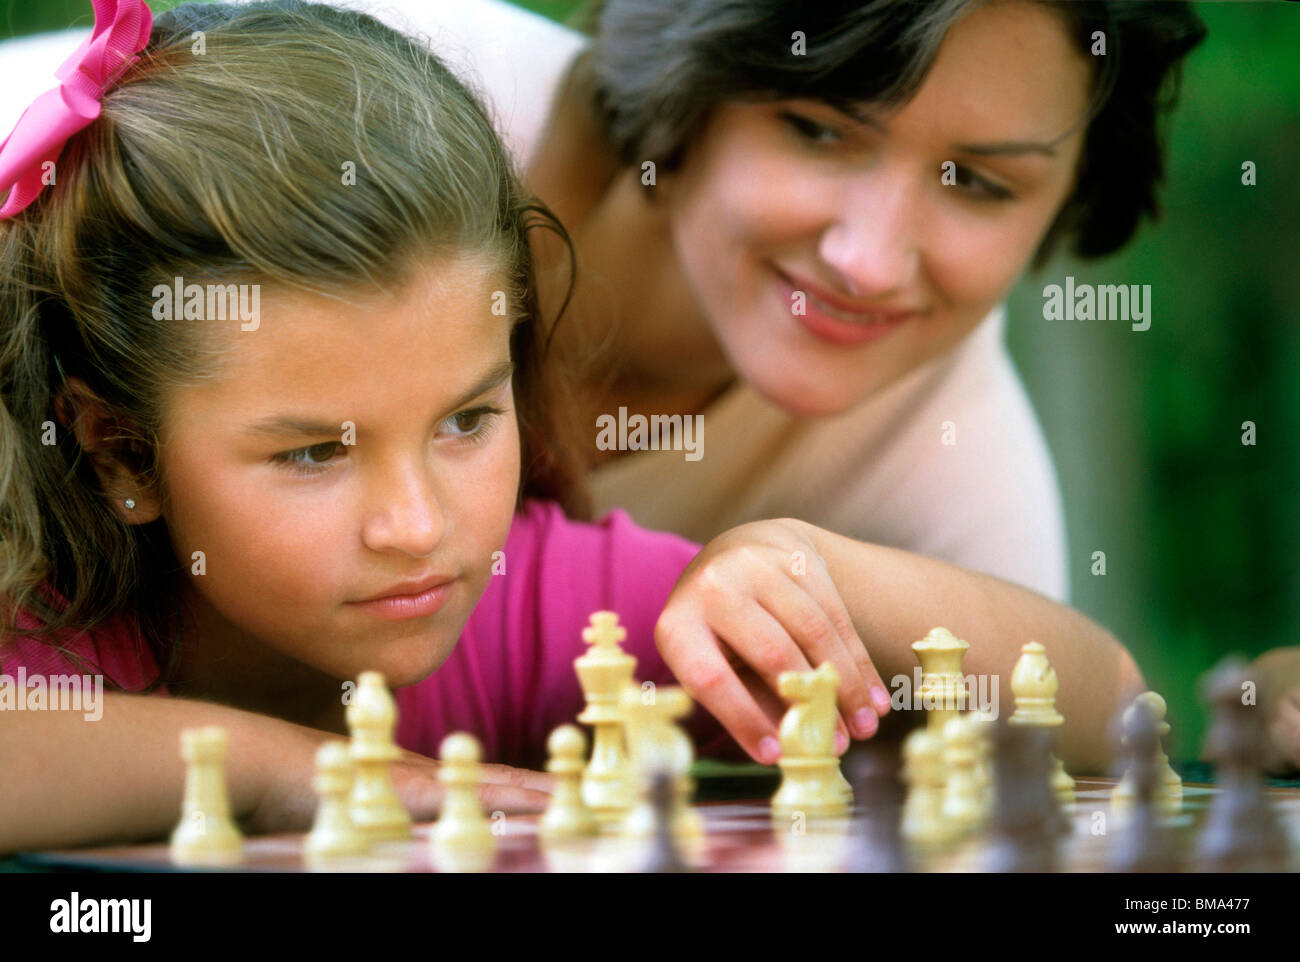 Mom looks on as daughter plays chess. - Stock Image